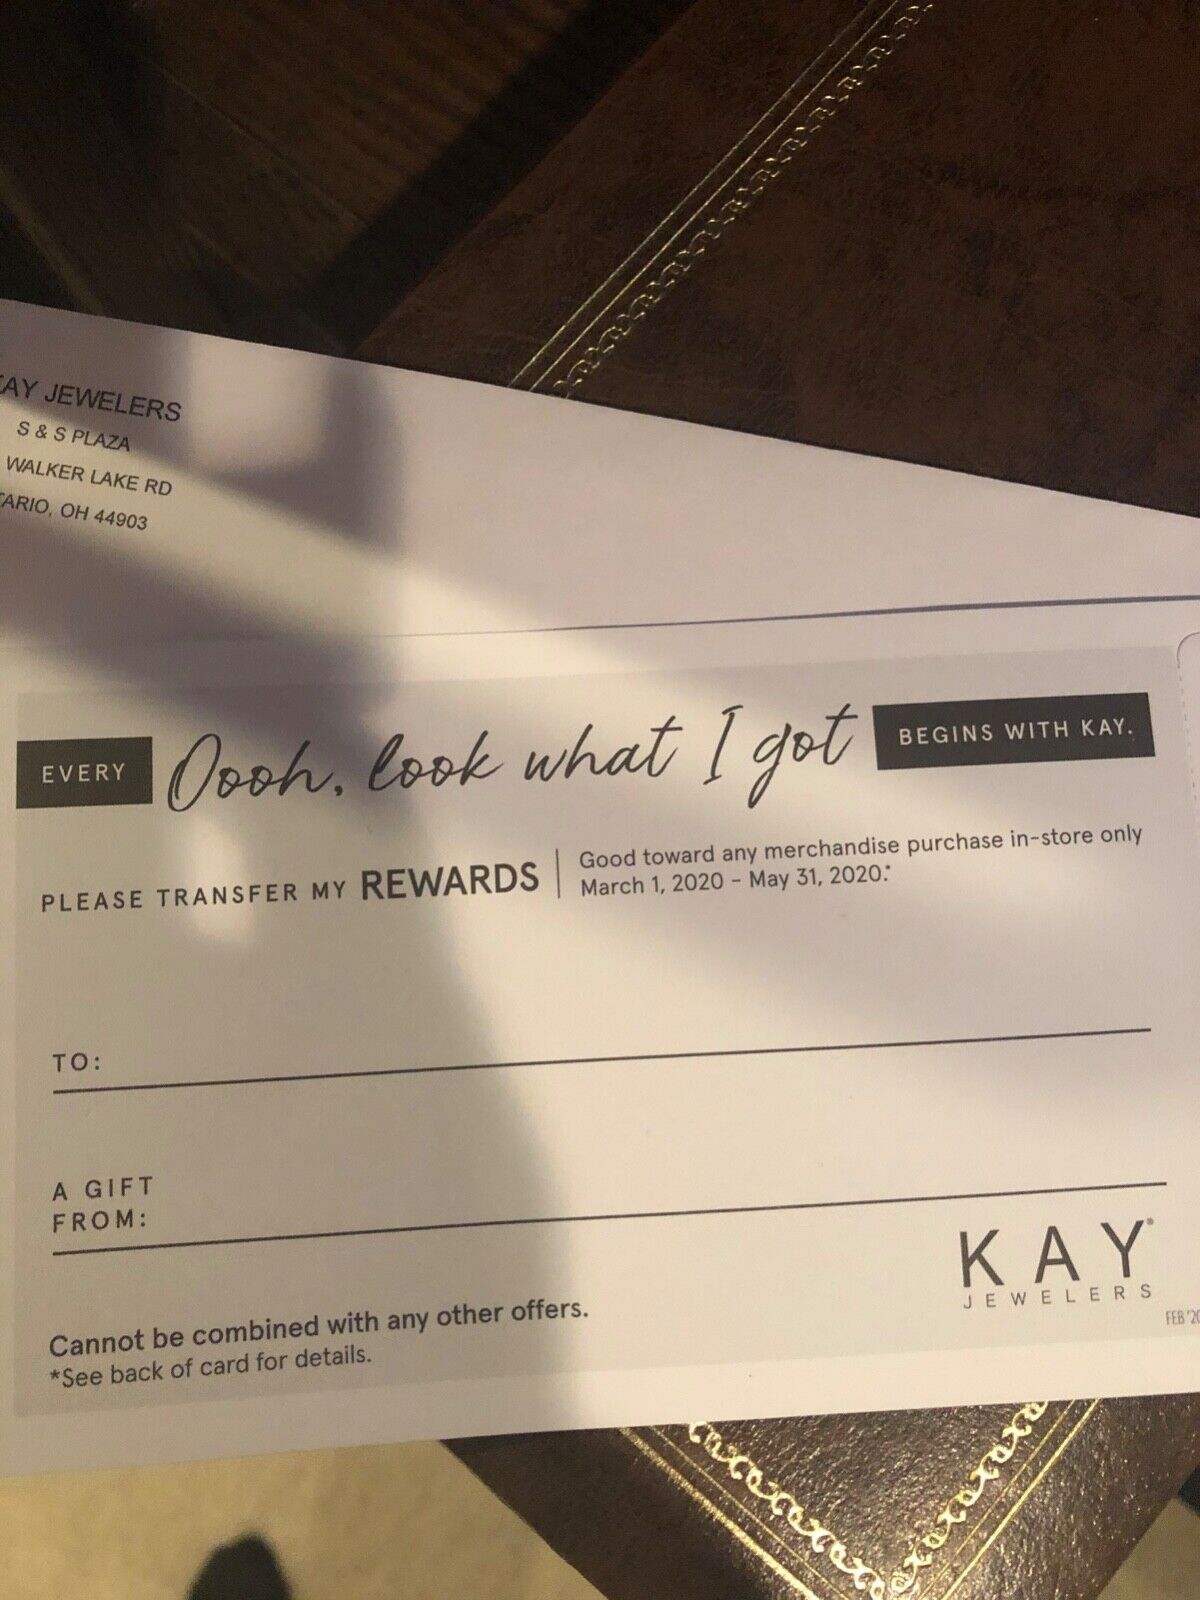 Kay Jewelers 1300 Rewards Certificate Valid March 1, 2020 - May 31, 2020 - $280.00